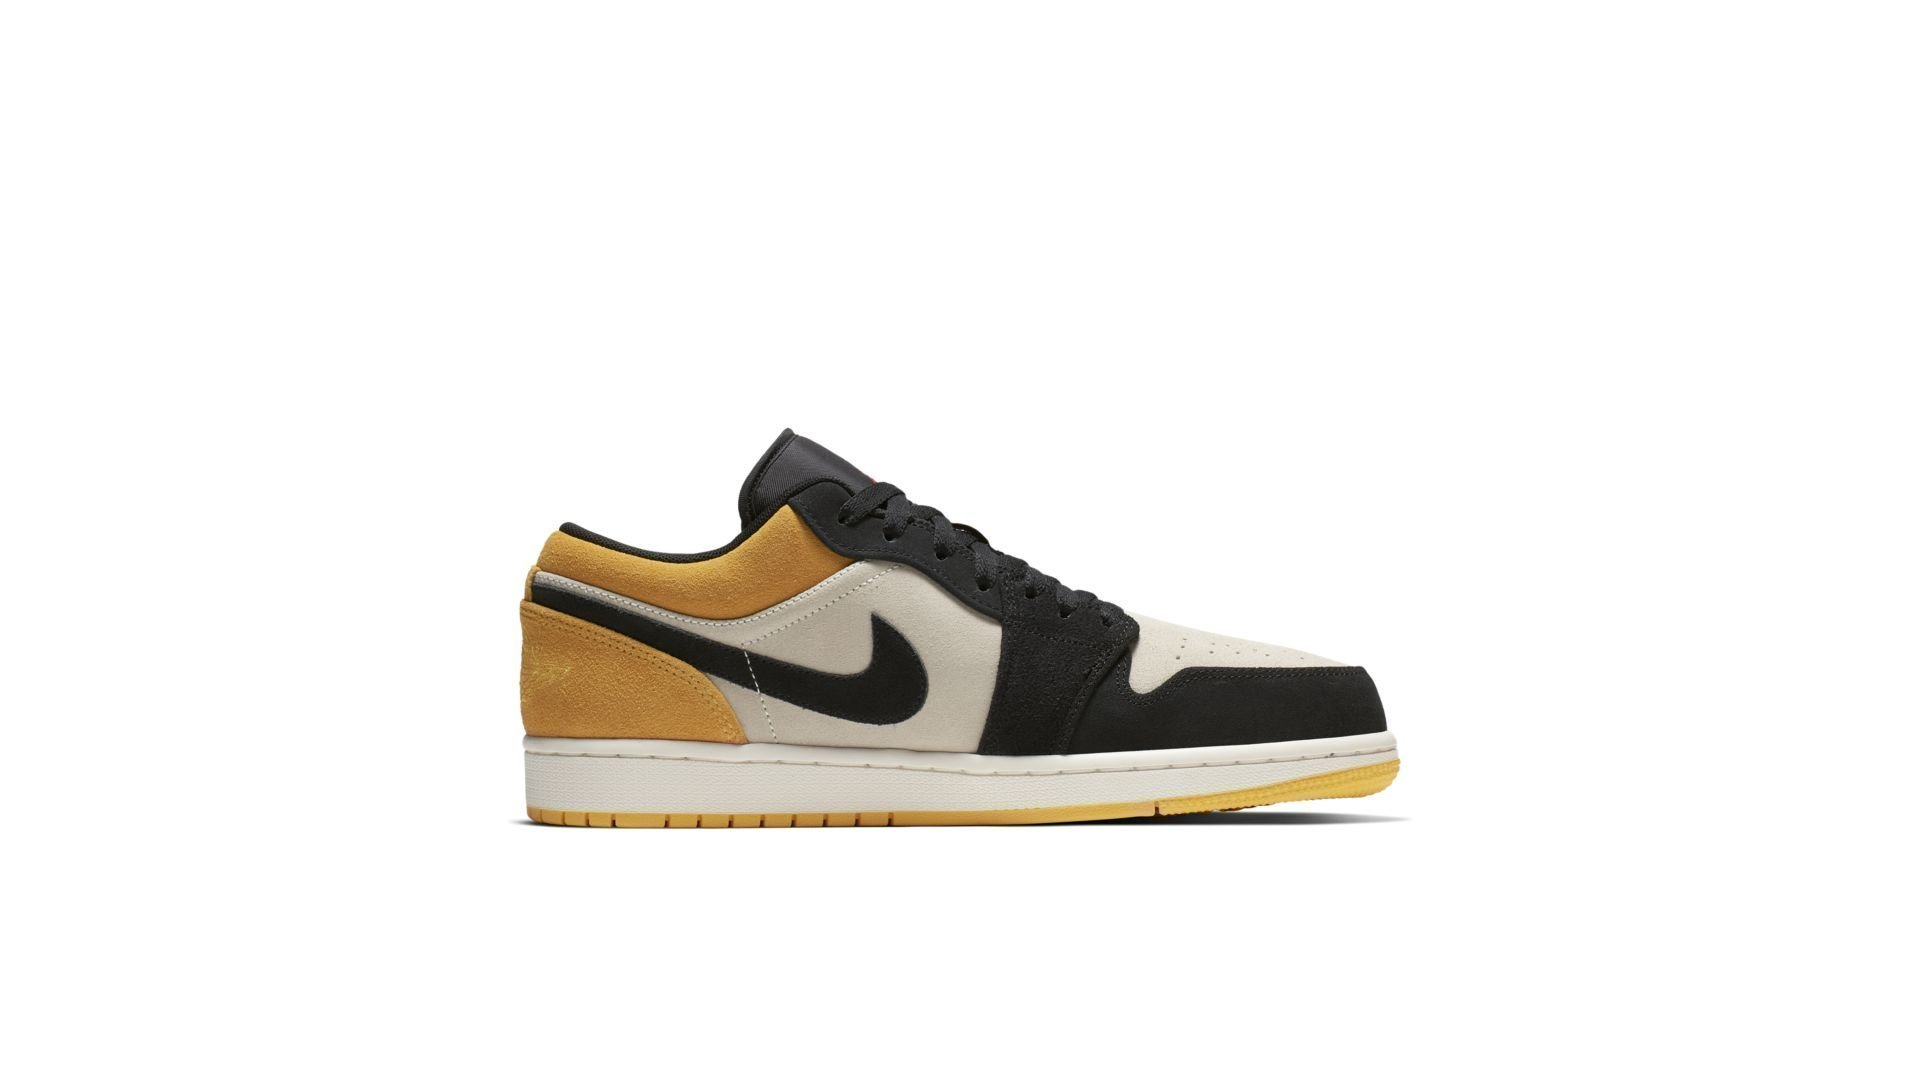 Jordan 1 Low Sail University Gold Black (553558-127)